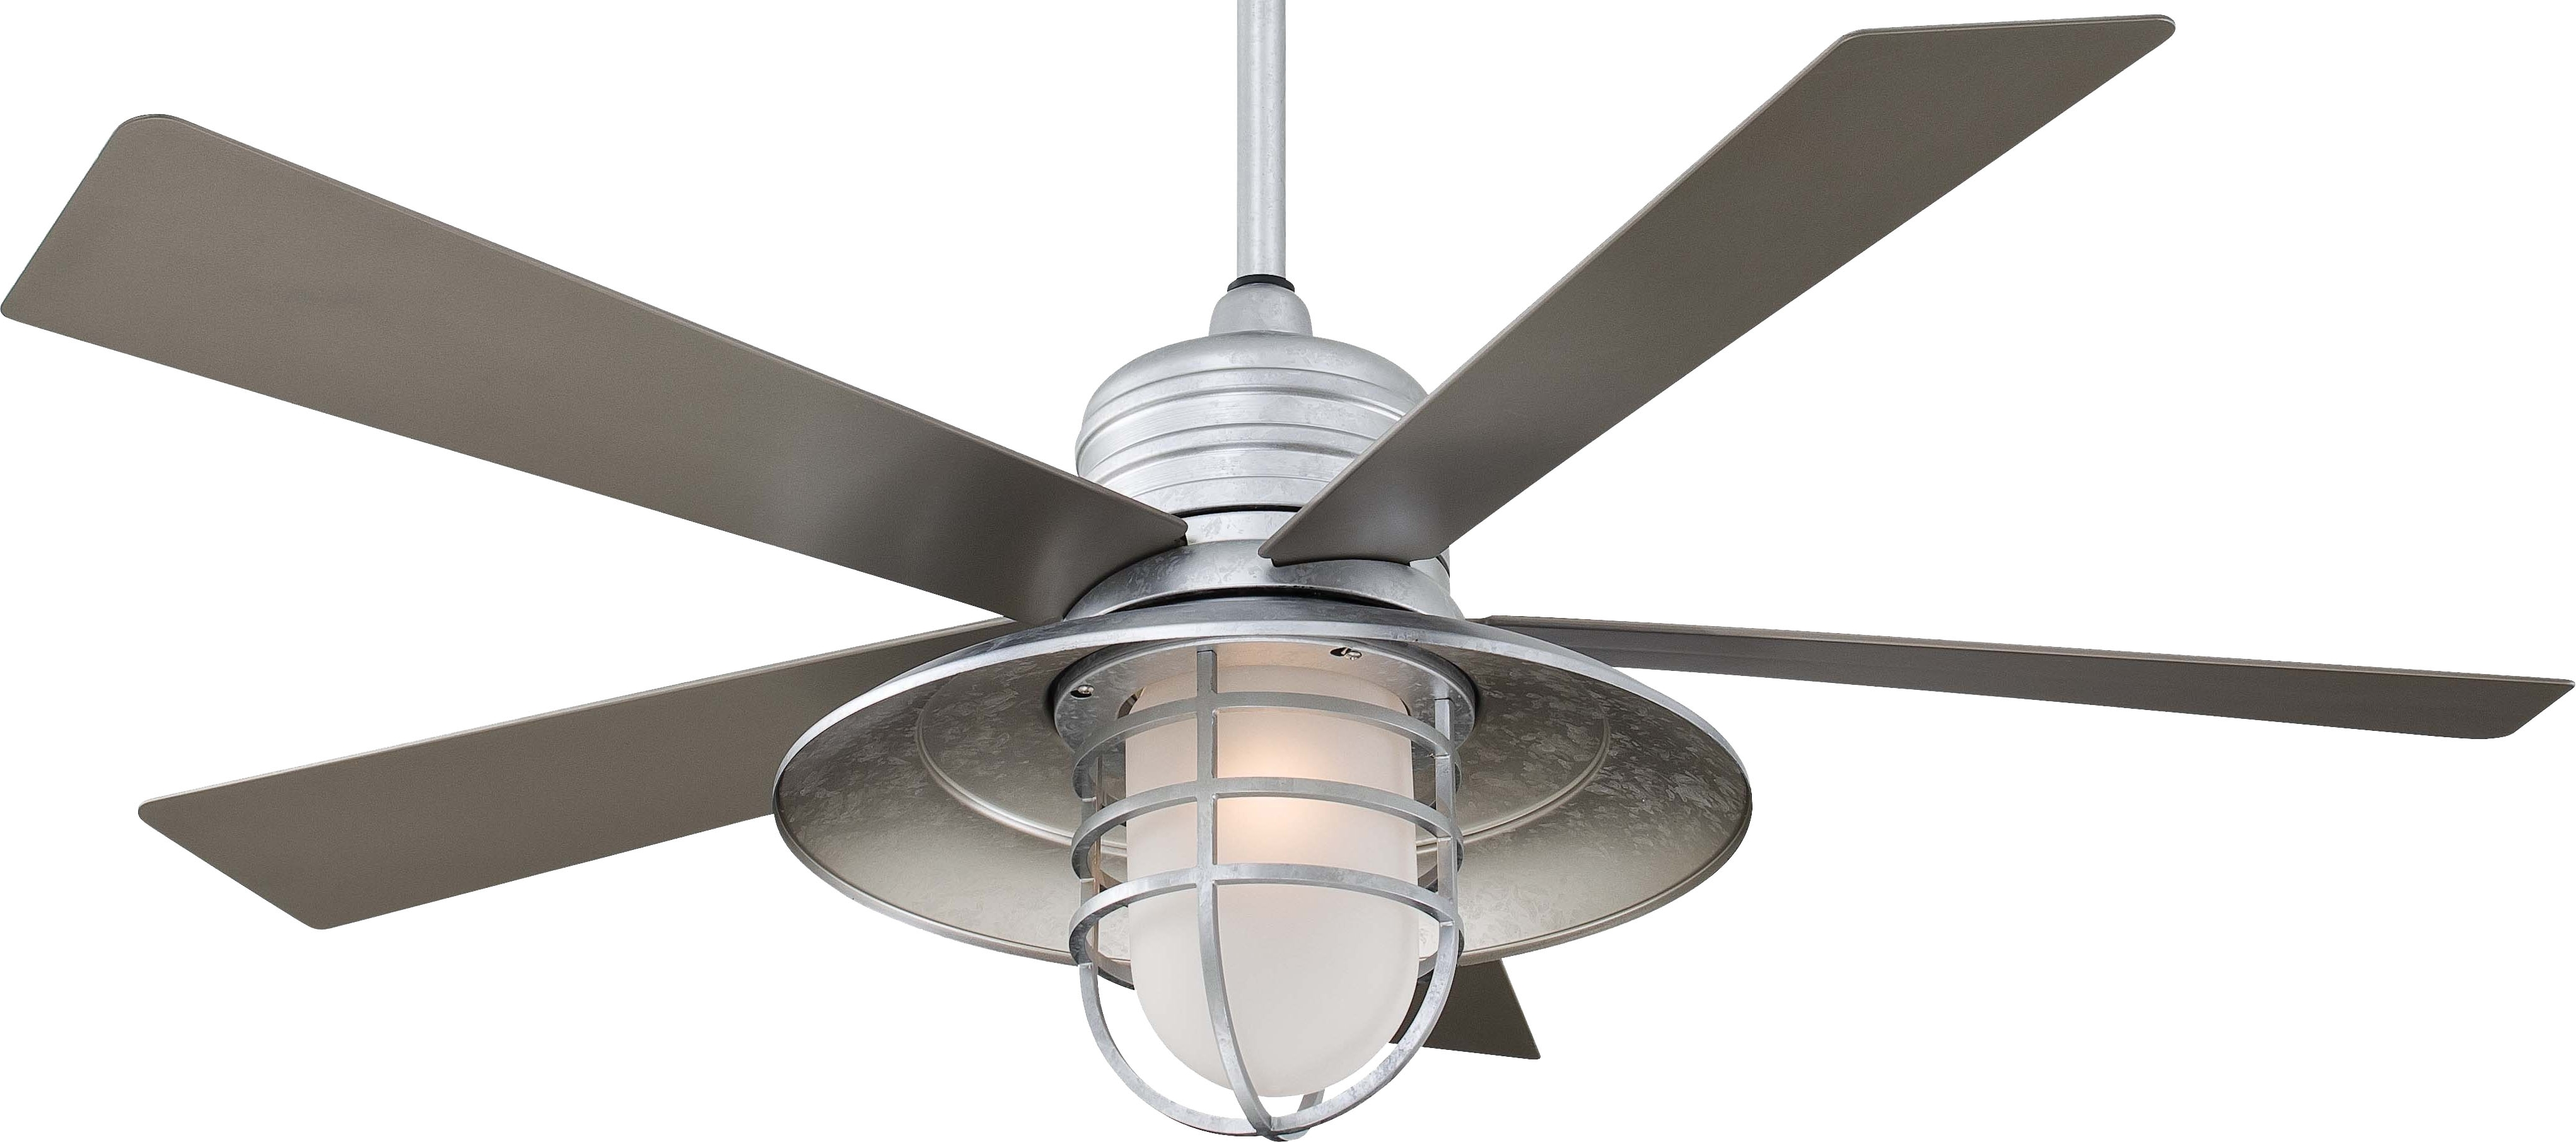 Newest Large Indoor Ceiling Fans With Lights Outstanding Outdoor Ceiling Inside Large Outdoor Ceiling Fans With Lights (View 17 of 20)